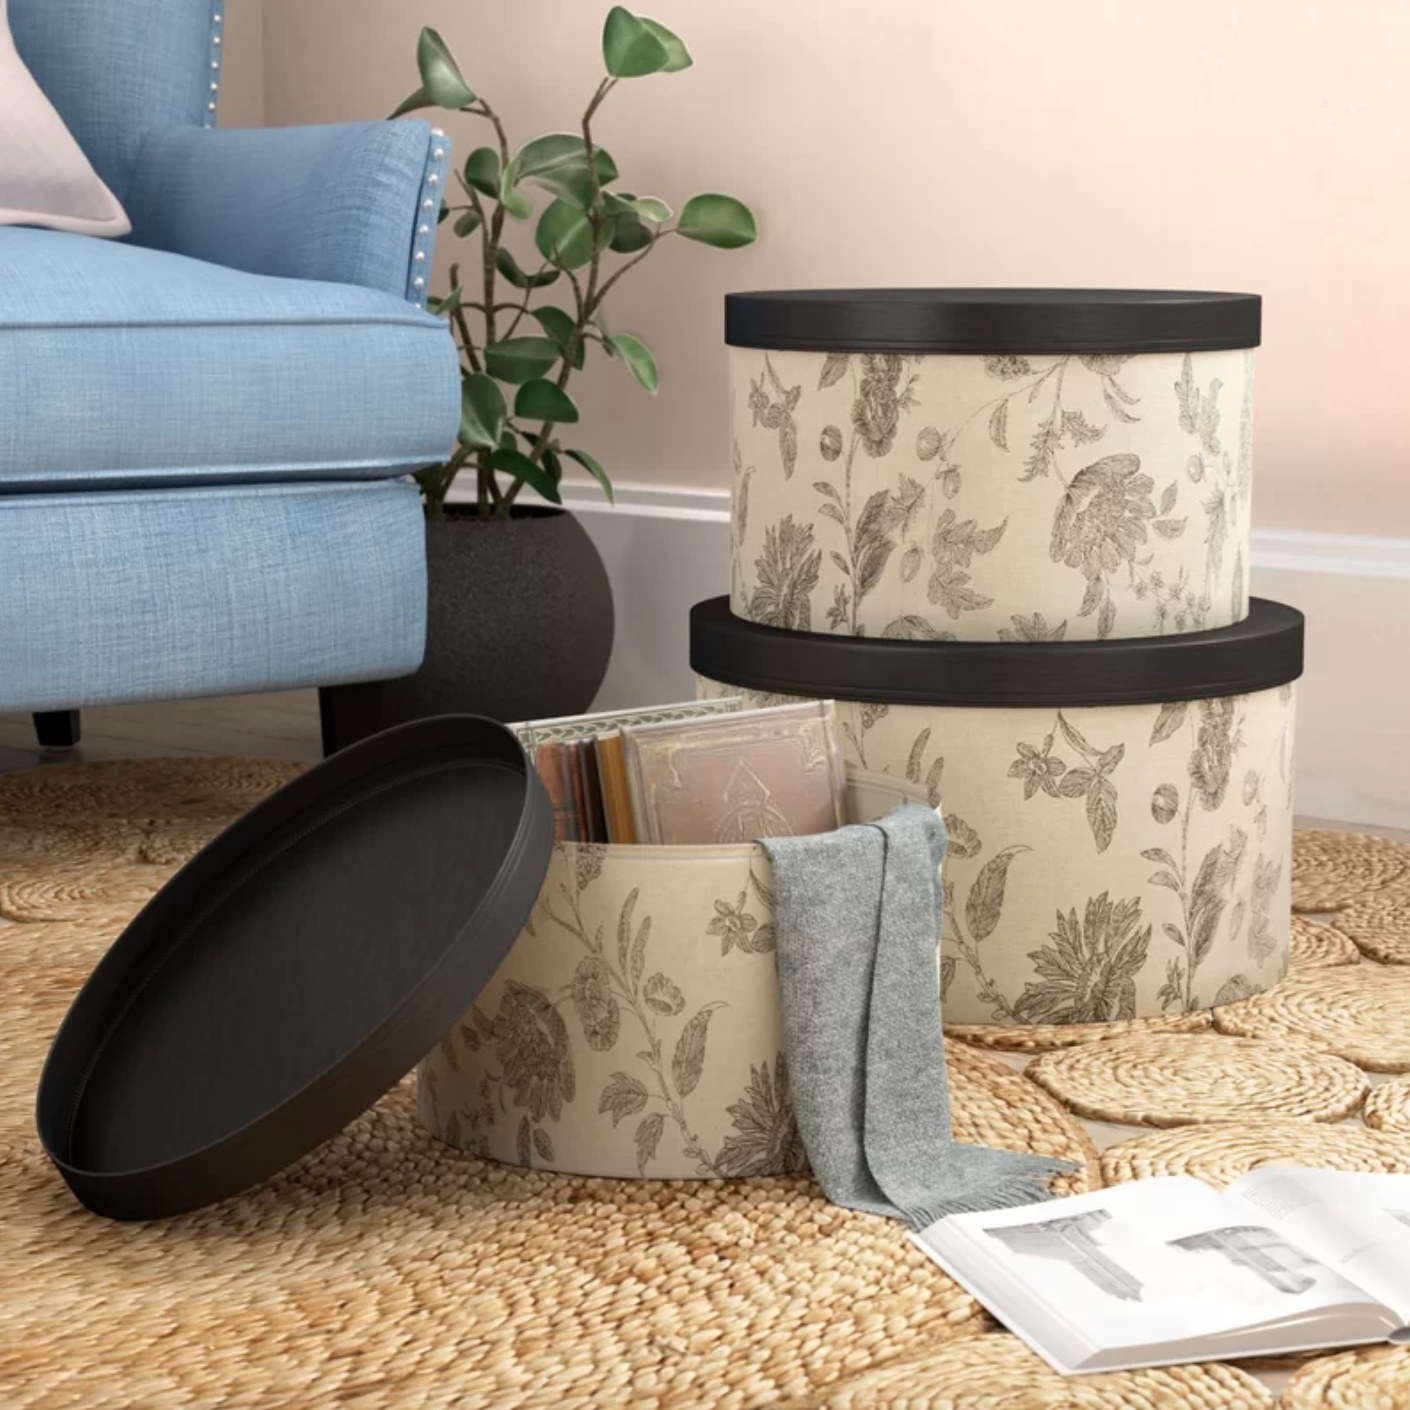 The three-piece set of hat boxes